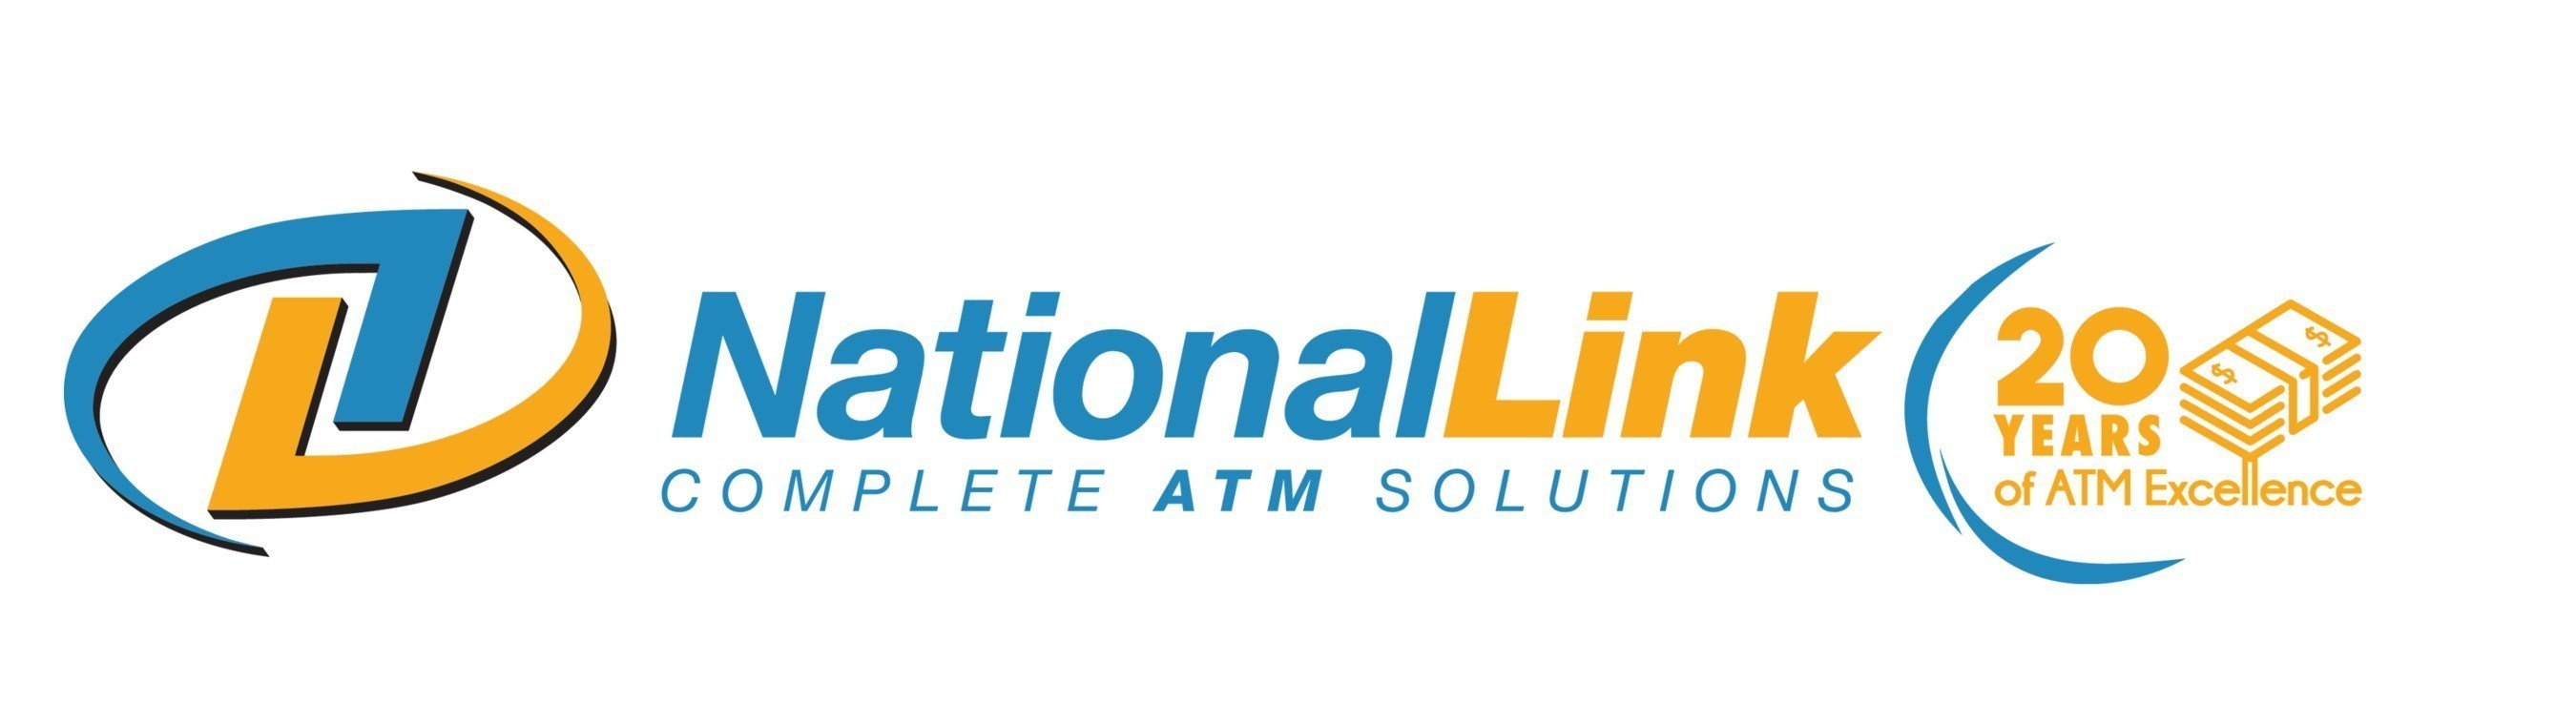 NationalLink Inc. Celebrates its 20th Anniversary in the ATM Industry